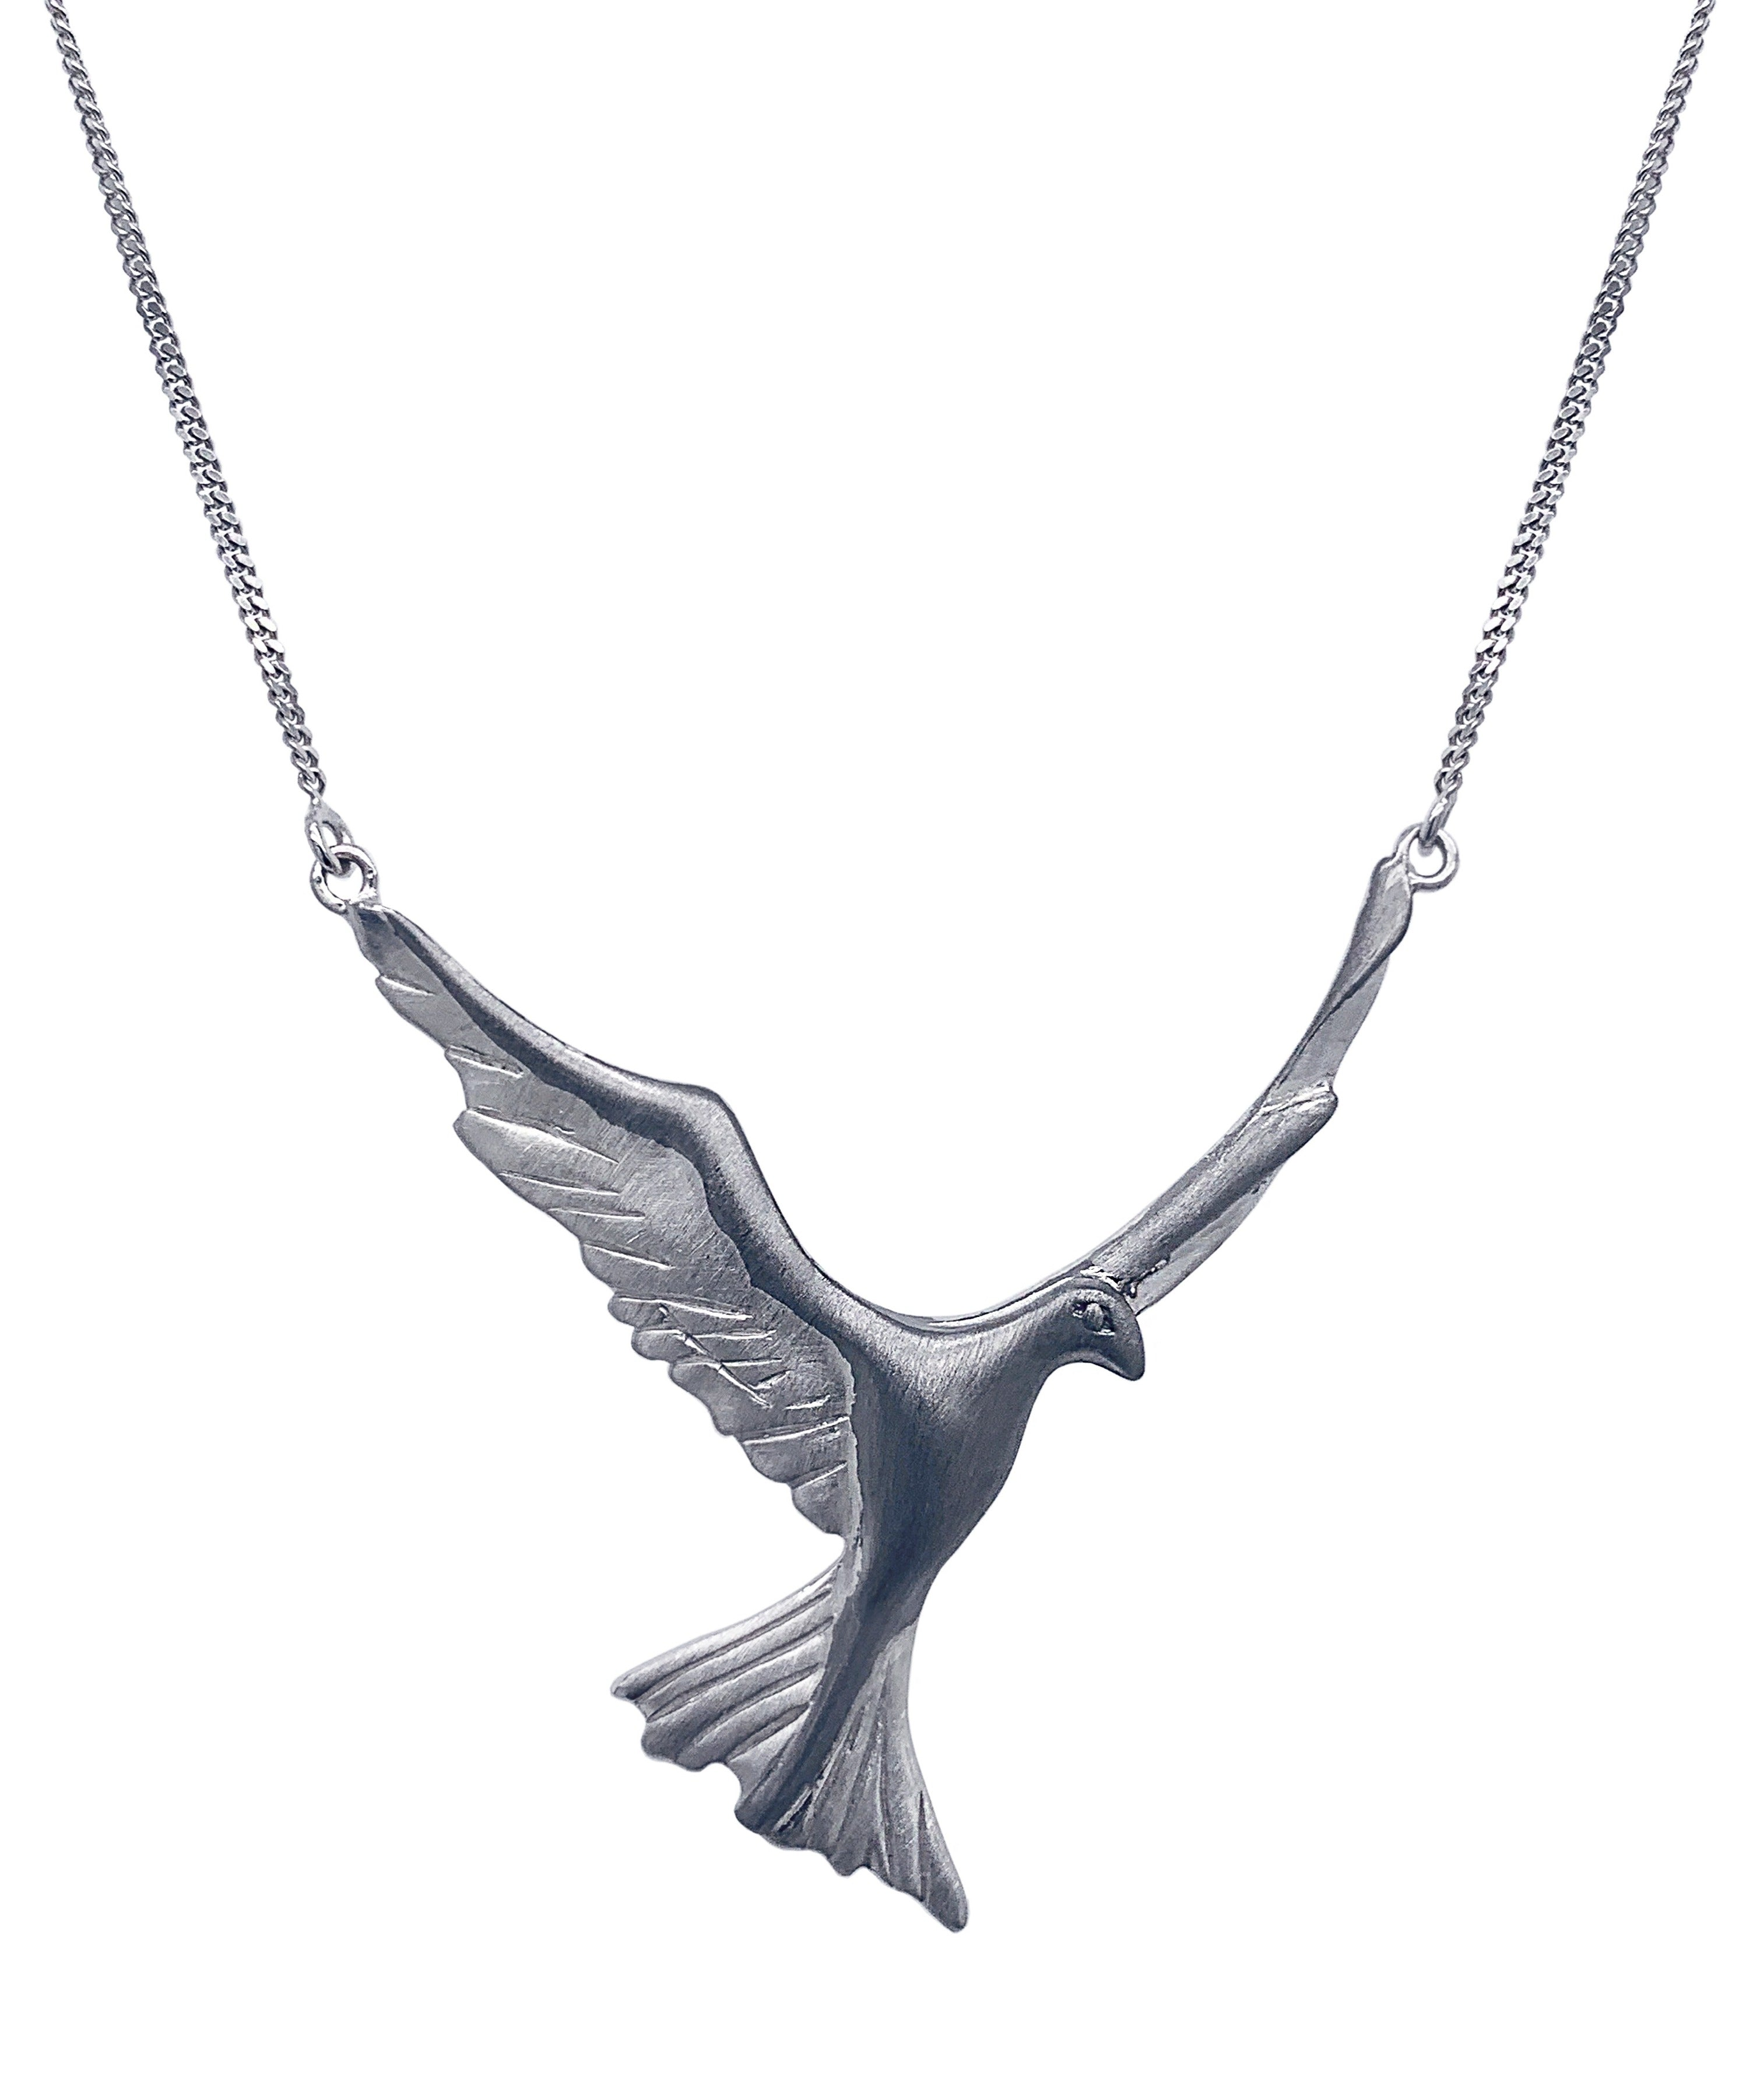 Silver Ruthenium Bird Necklace